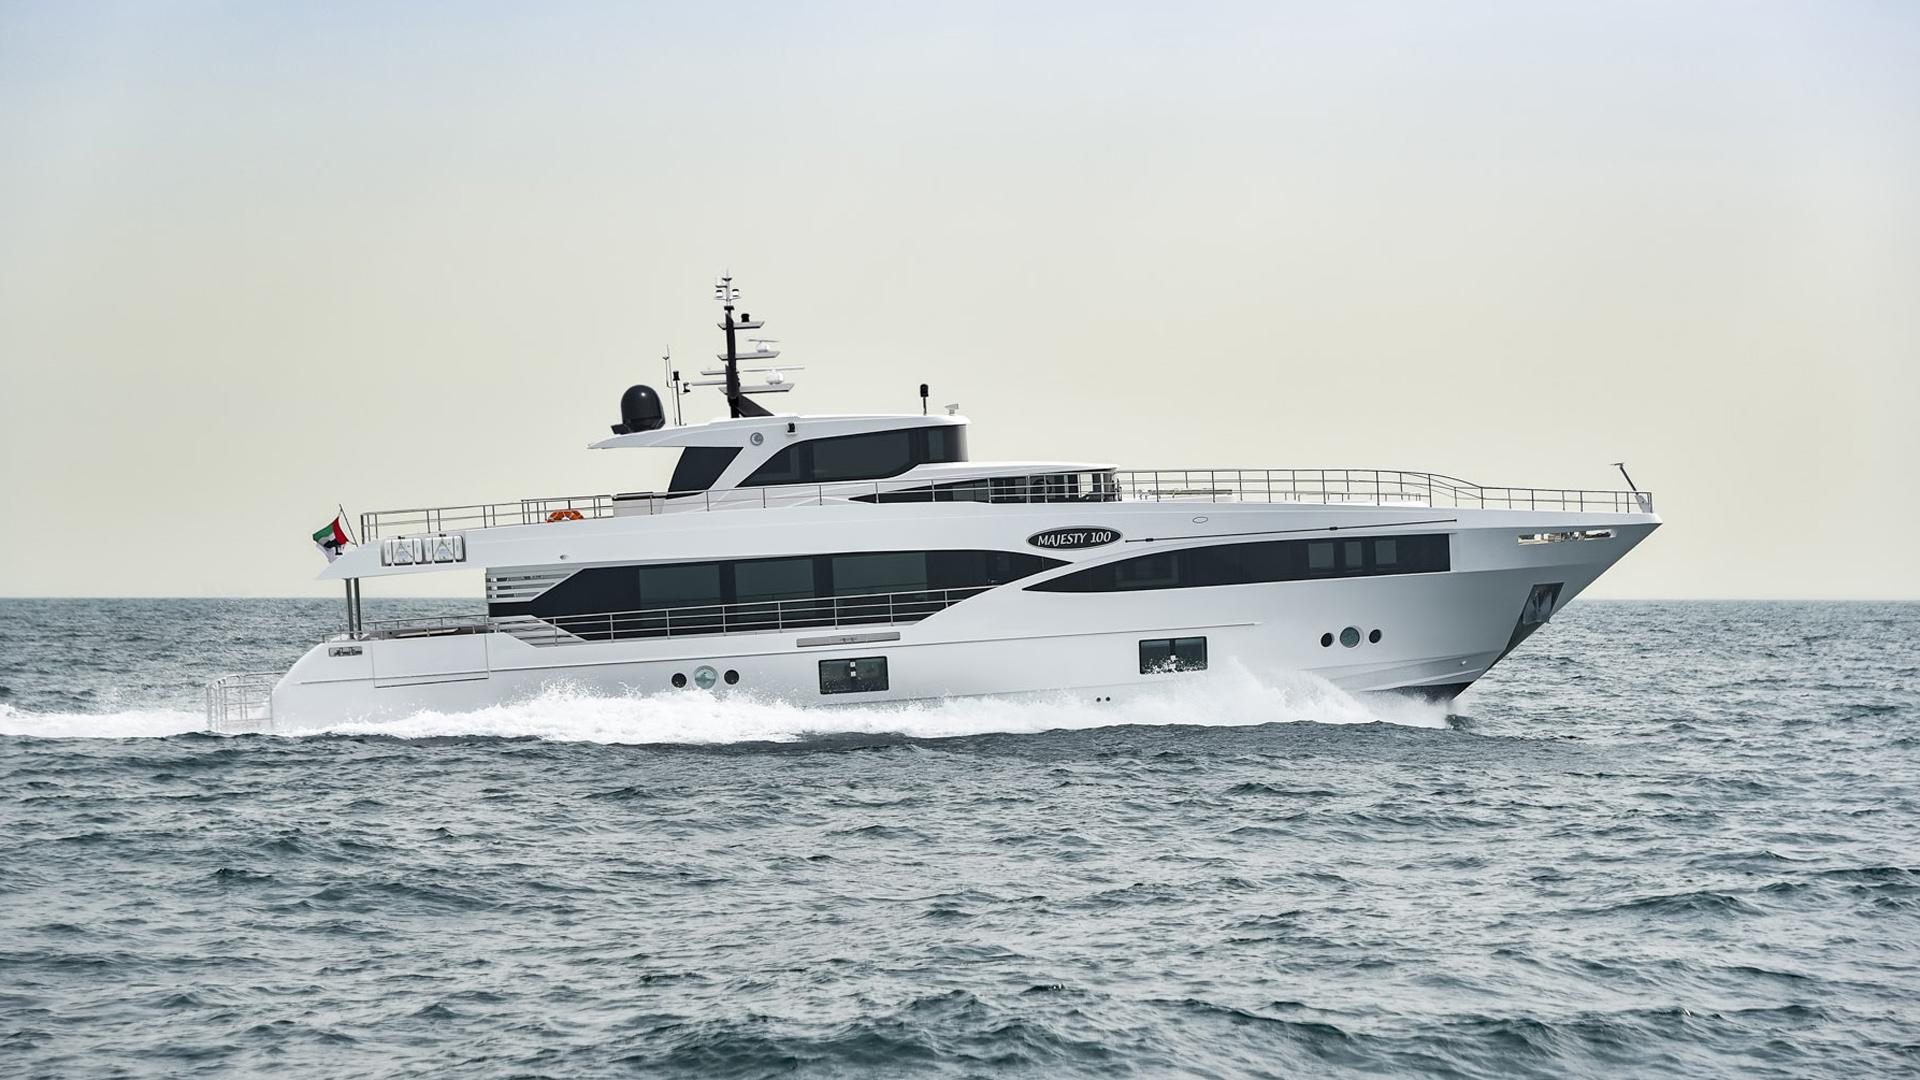 nahar majesty 100 motoryacht gulf craft 31m 2017 profile